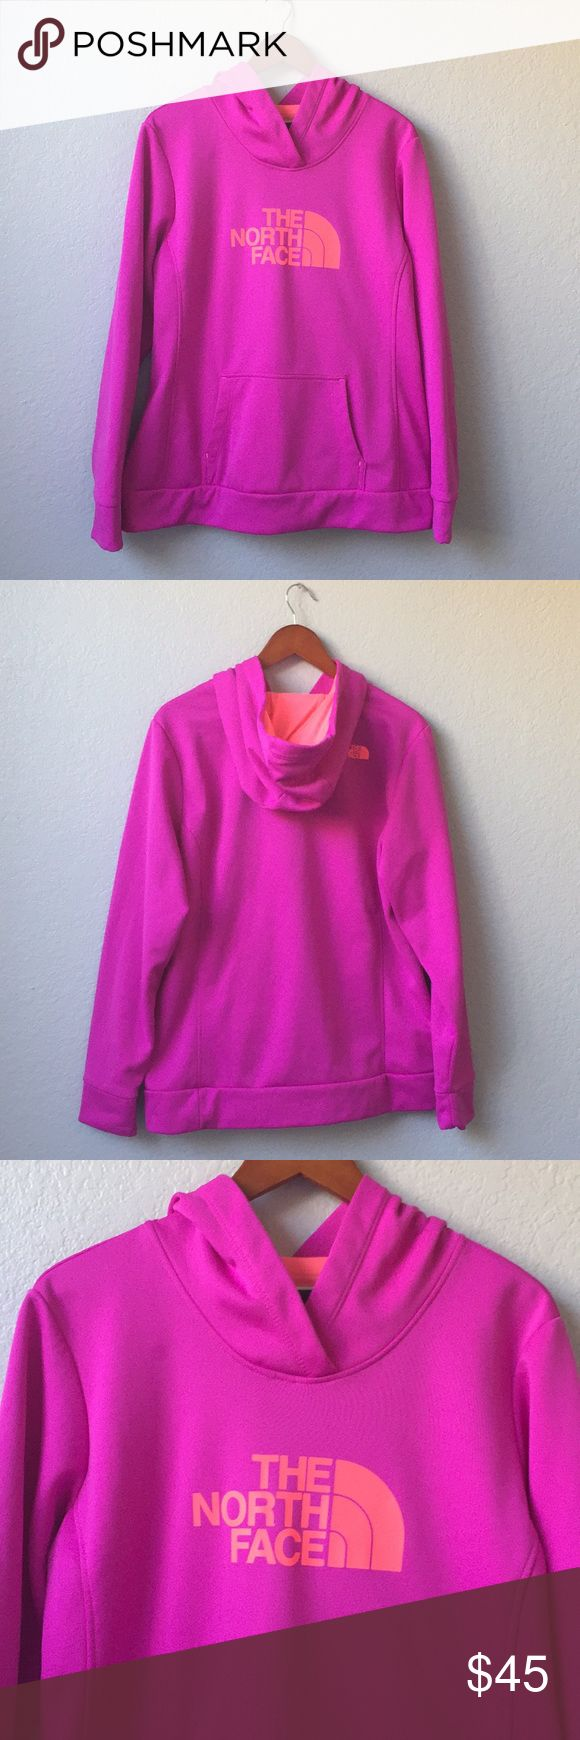 Violet Pink Women's Fave Pullover Hoodie Size XL. North Face Violet Pink/Neon Orange Women's Fave Pullover Hoodie. Preowned and in excellent condition. Looks brand new! Kangaroo hand pockets. 100% Polyester. Please view all photos. Super soft lining.  Stretch Fleece. Double layered hood. Breathable when layered over training gear. Retails for $60 North Face Tops Sweatshirts & Hoodies